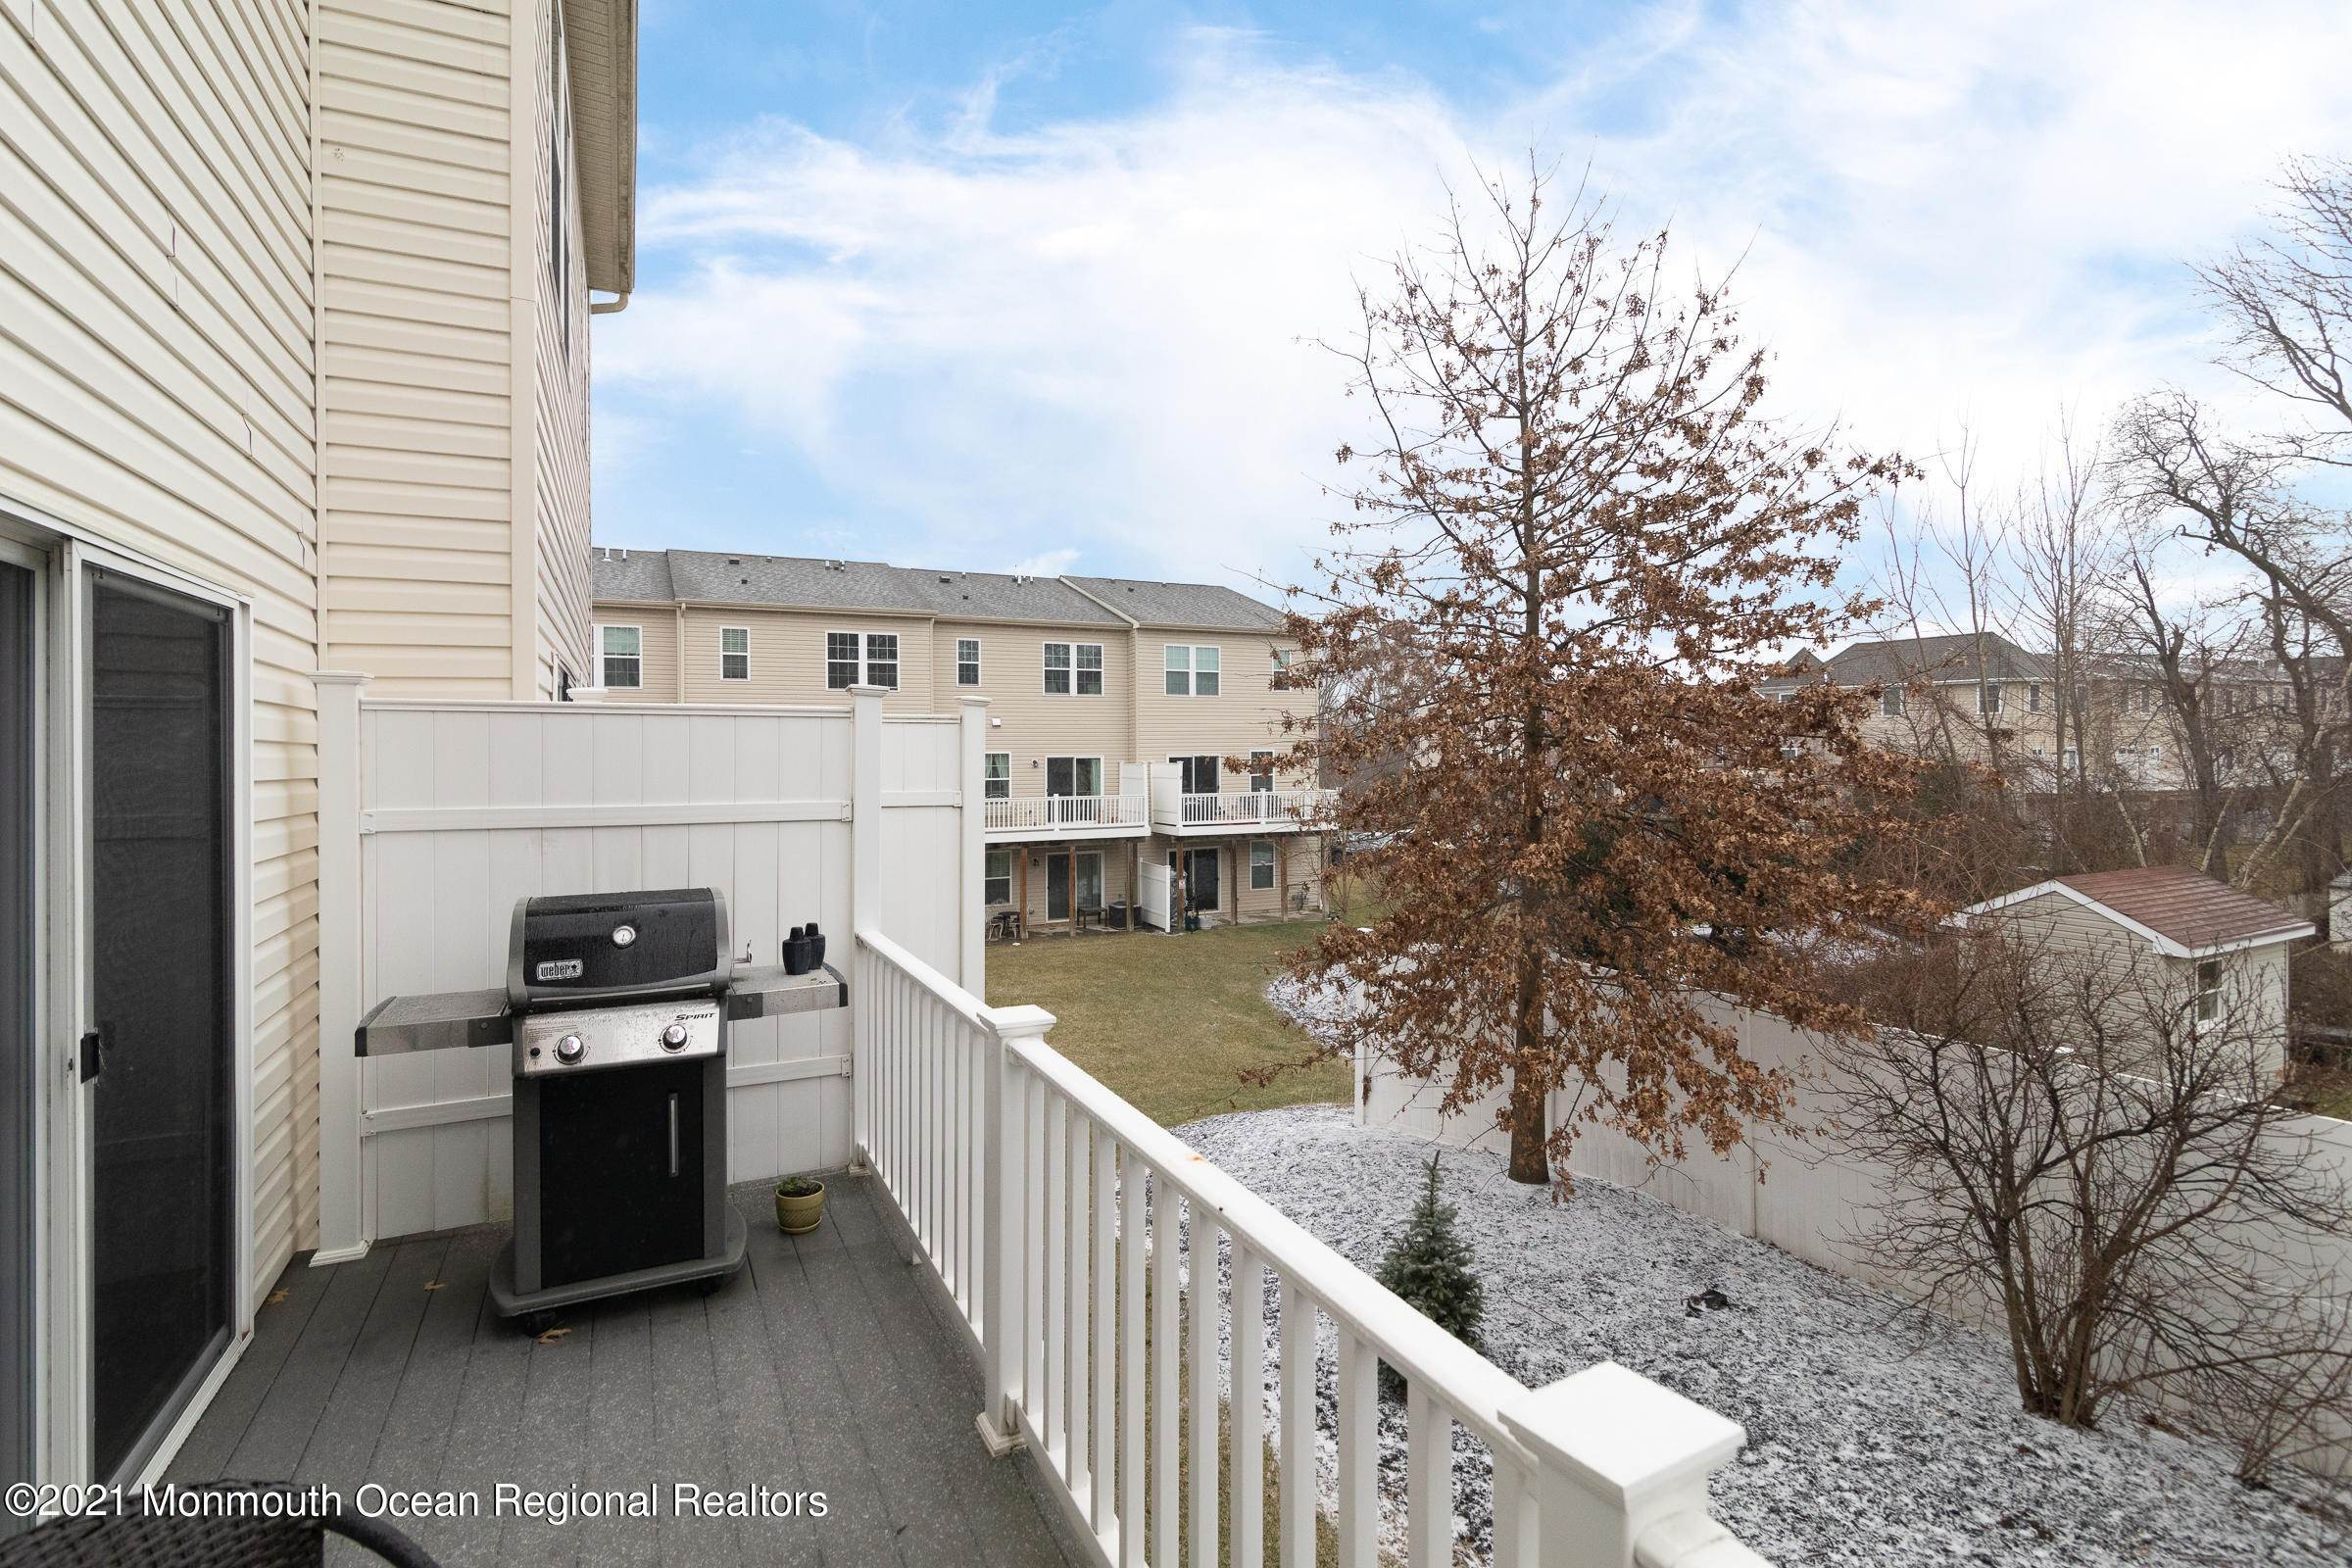 36. Condominiums for Sale at 106 Phillip E Frank Way Cliffwood, New Jersey 07721 United States